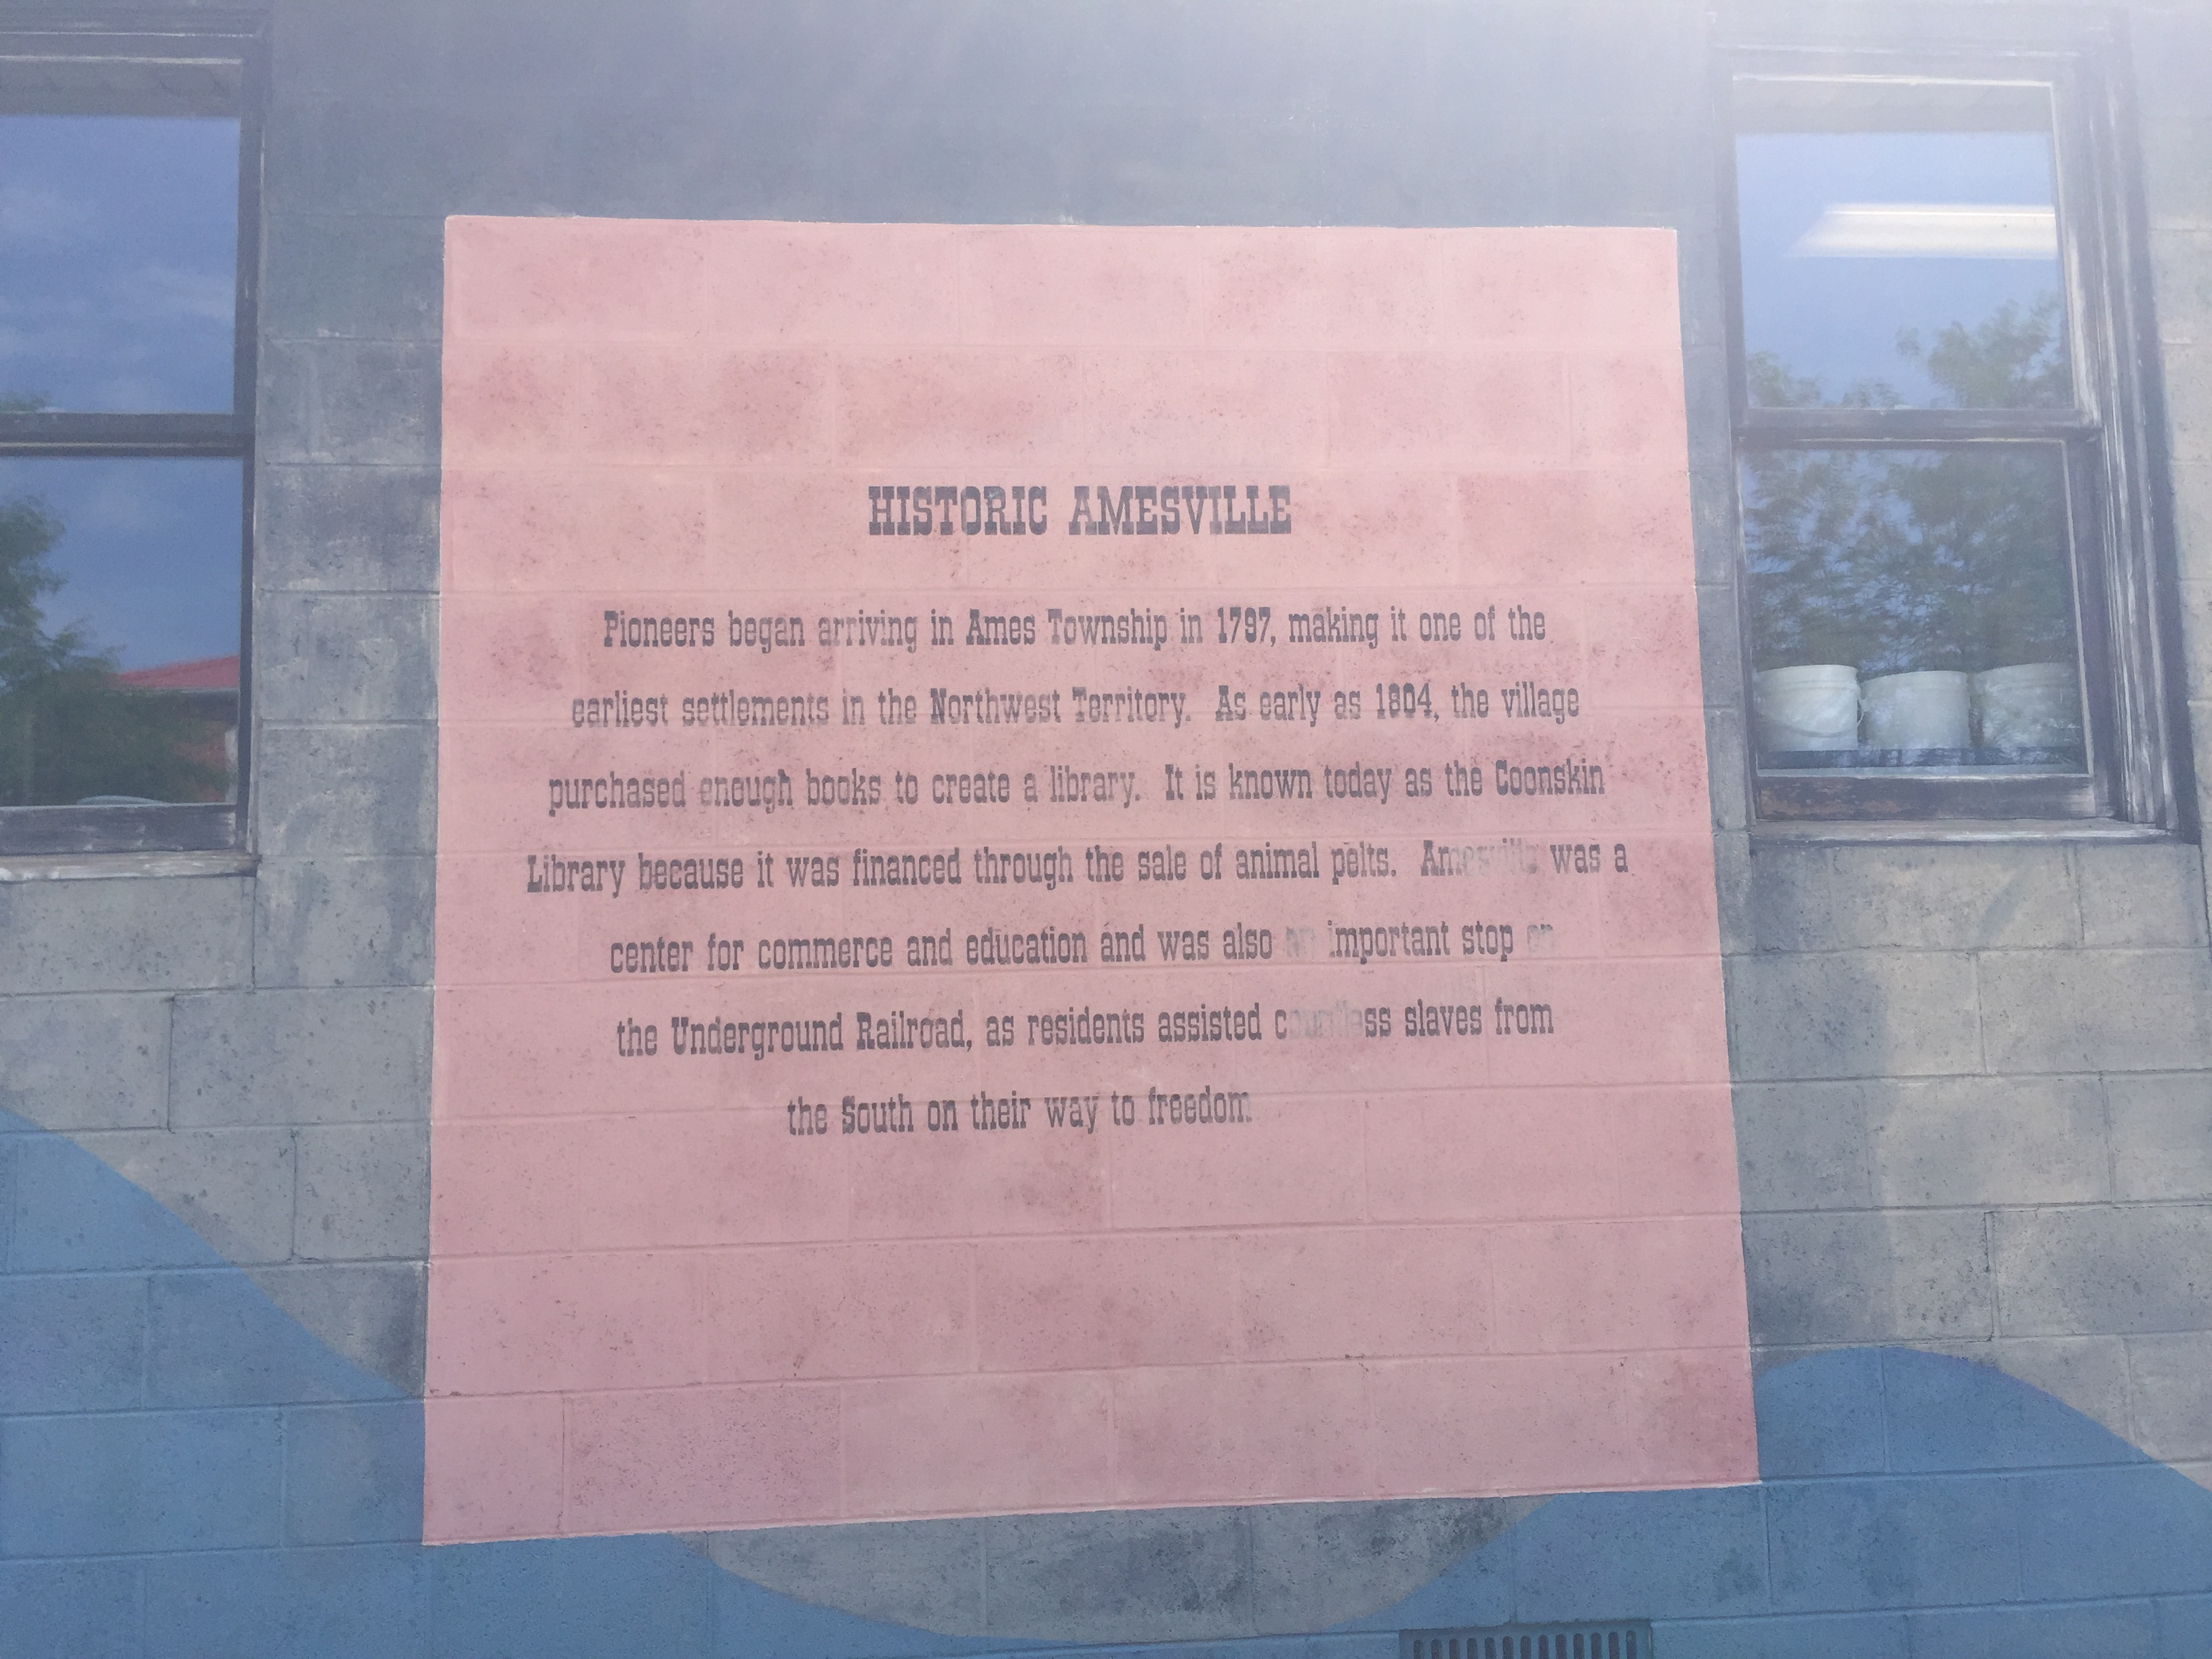 The side of the post office in Amesville hosts this short synopsis of the town's history, including the Coonskin Library and notable tidbit that the town was also a stop along the Underground Railroad. Photo by J Hazen on June 12, 2017.